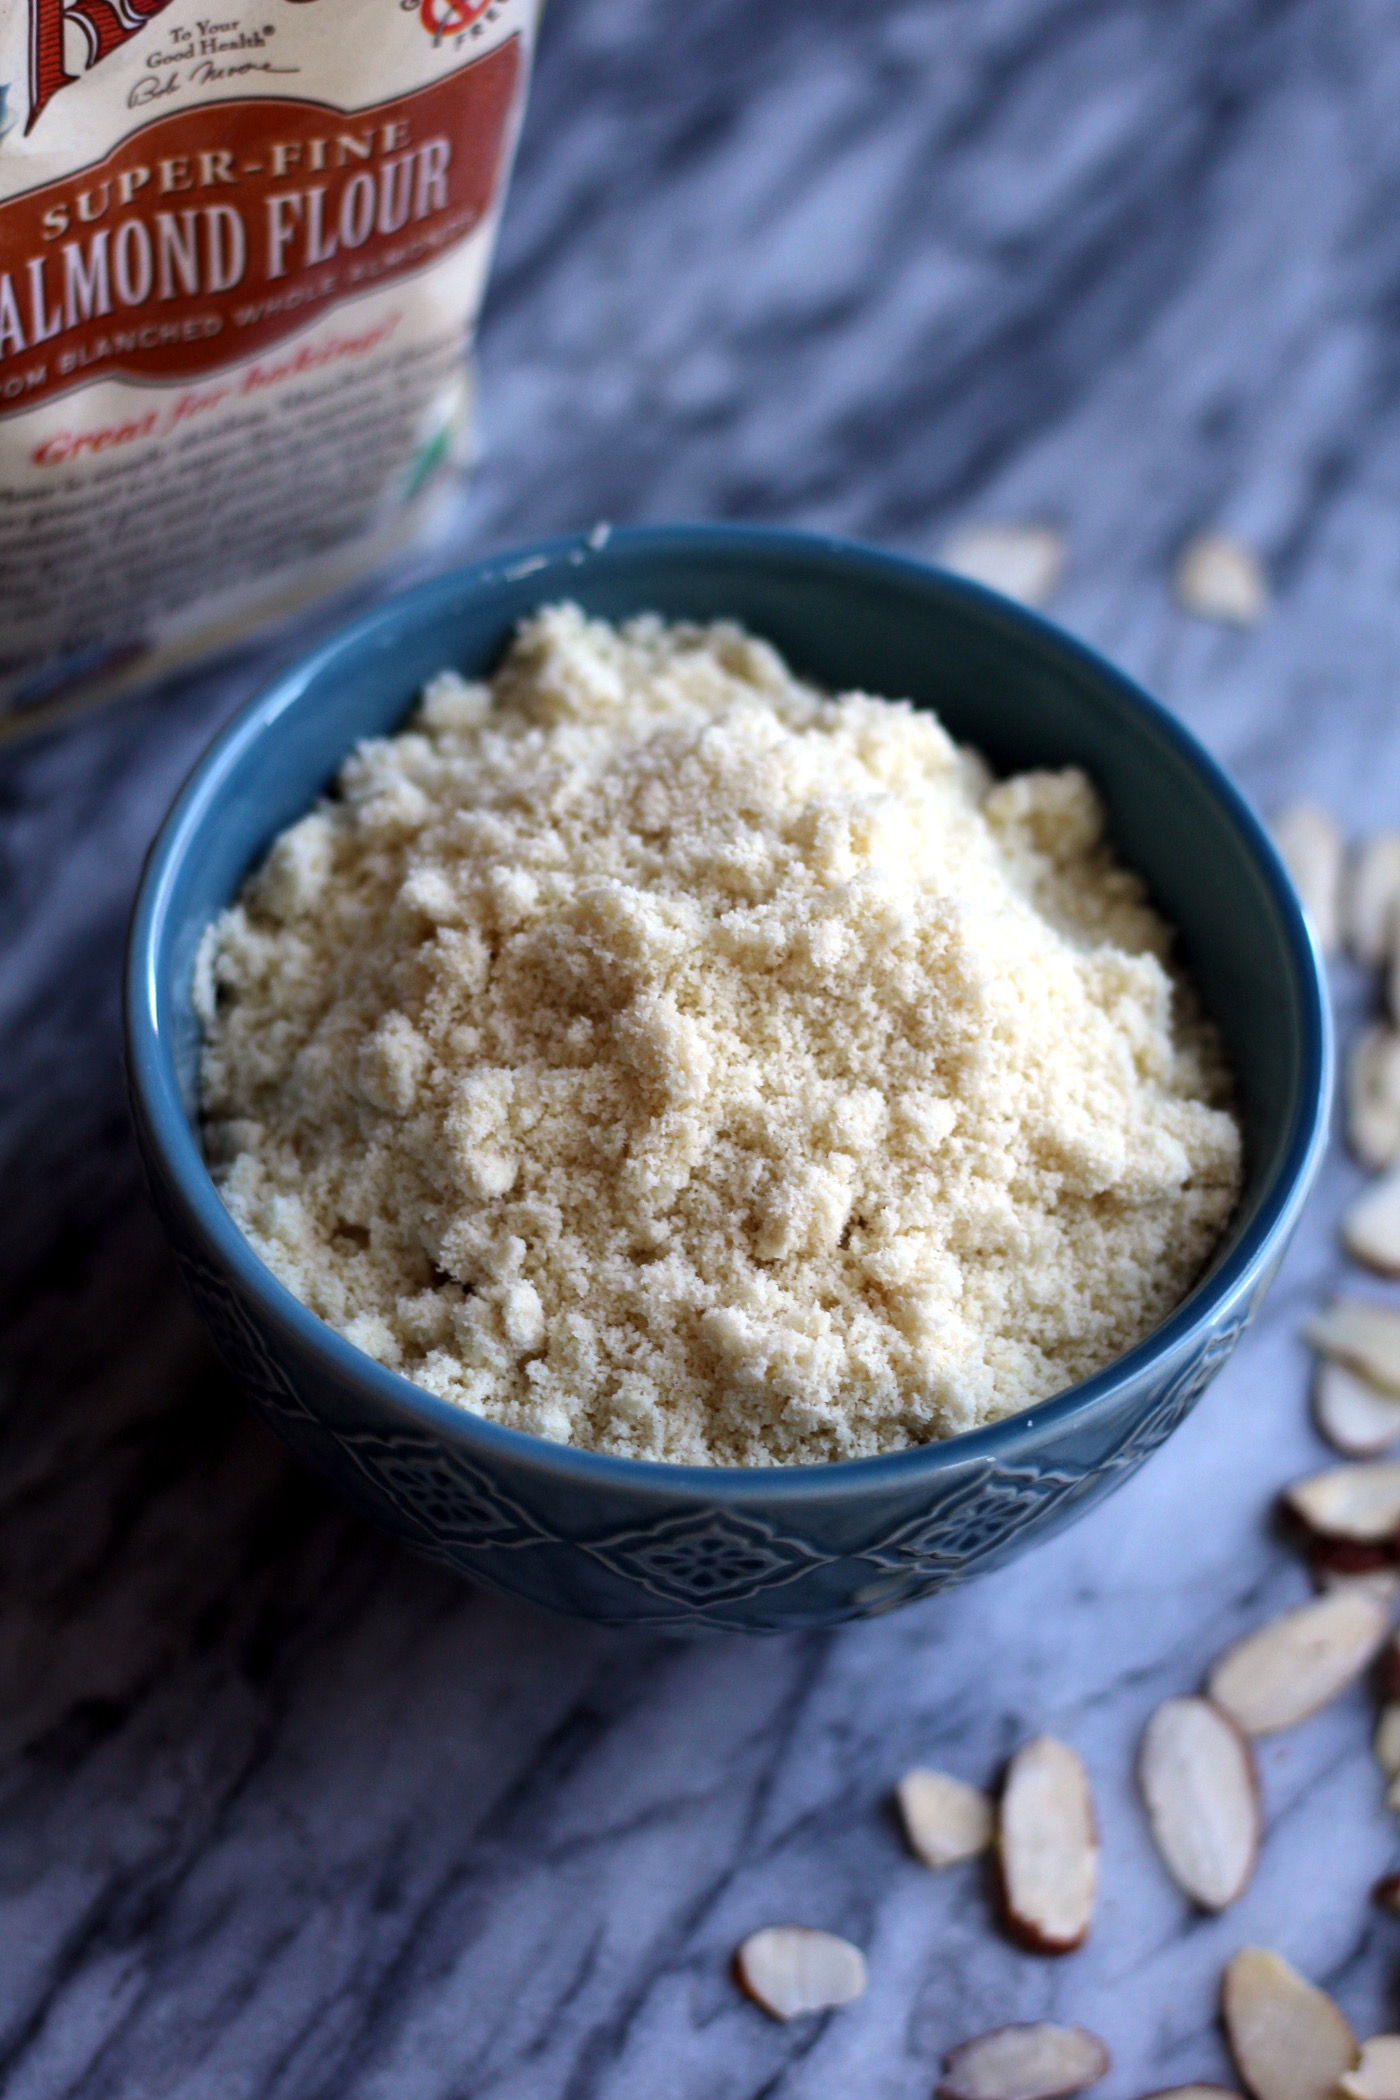 Meet Your Ingredients: Almond Flour